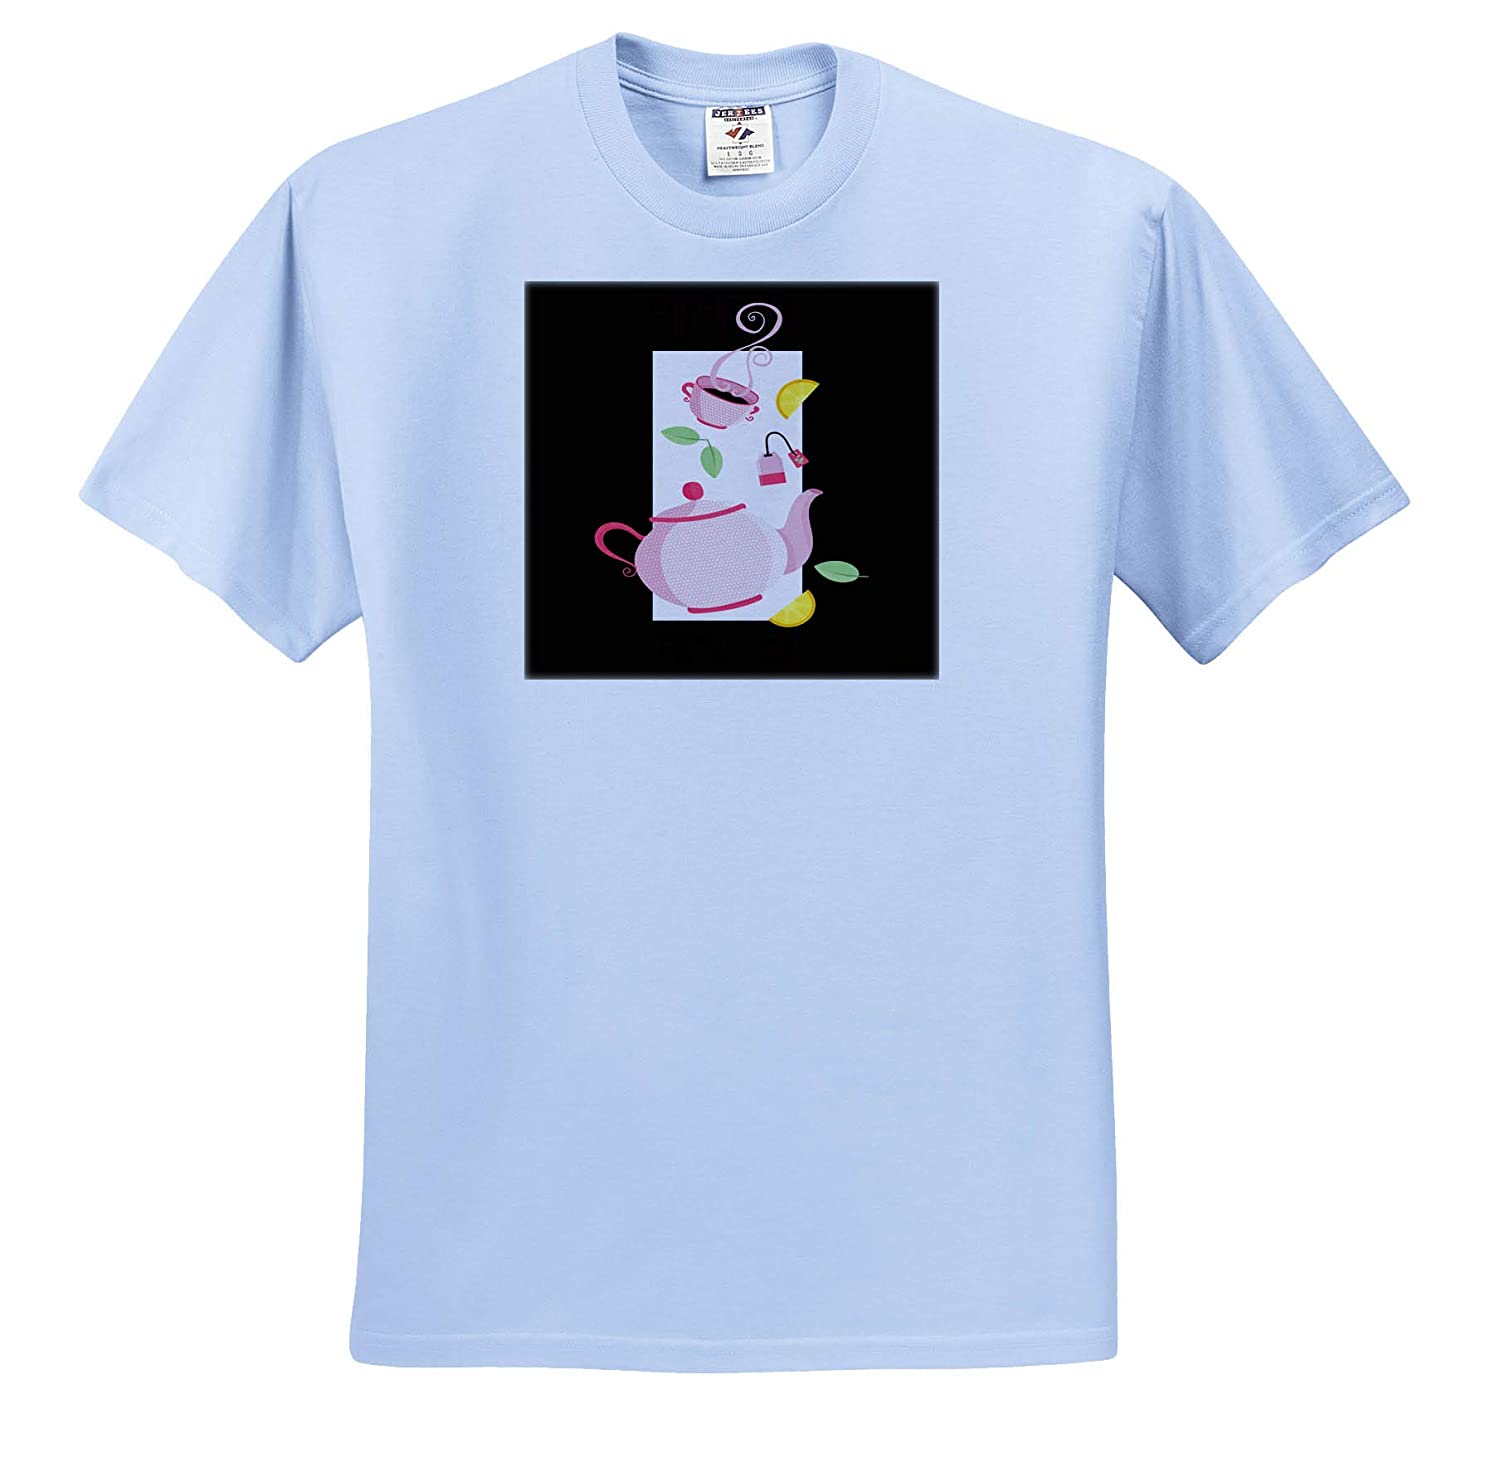 Adult T-Shirt XL 3dRose Sven Herkenrath Funny Tea Time for Relaxing and Lunch Breakfast ts/_316107